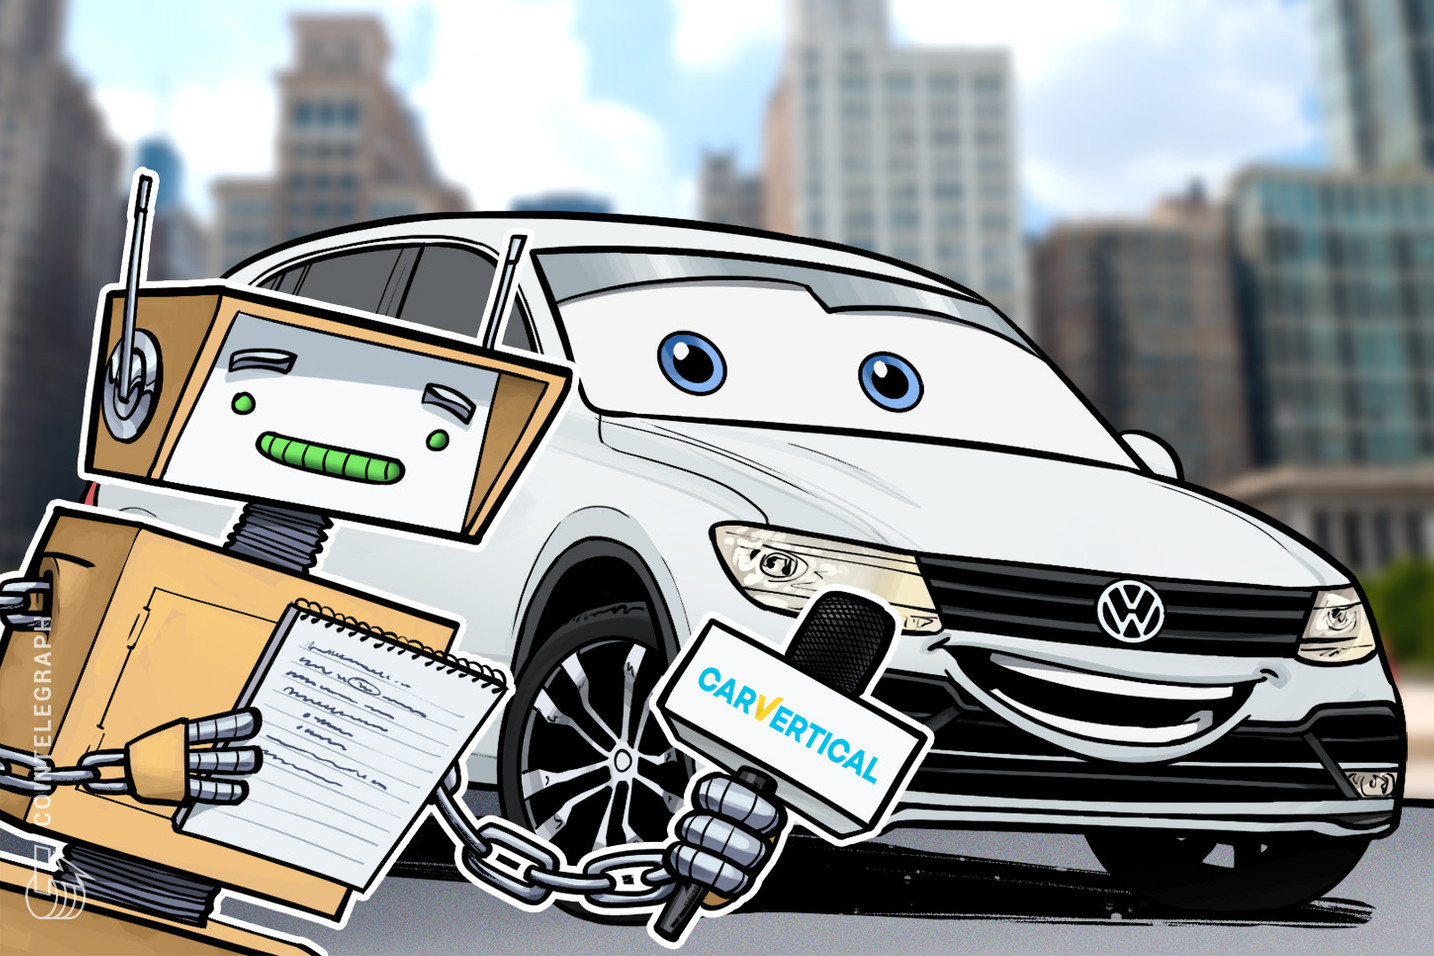 Volkswagen to Partner Blockchain-based Startup for Developing Automotive Applications